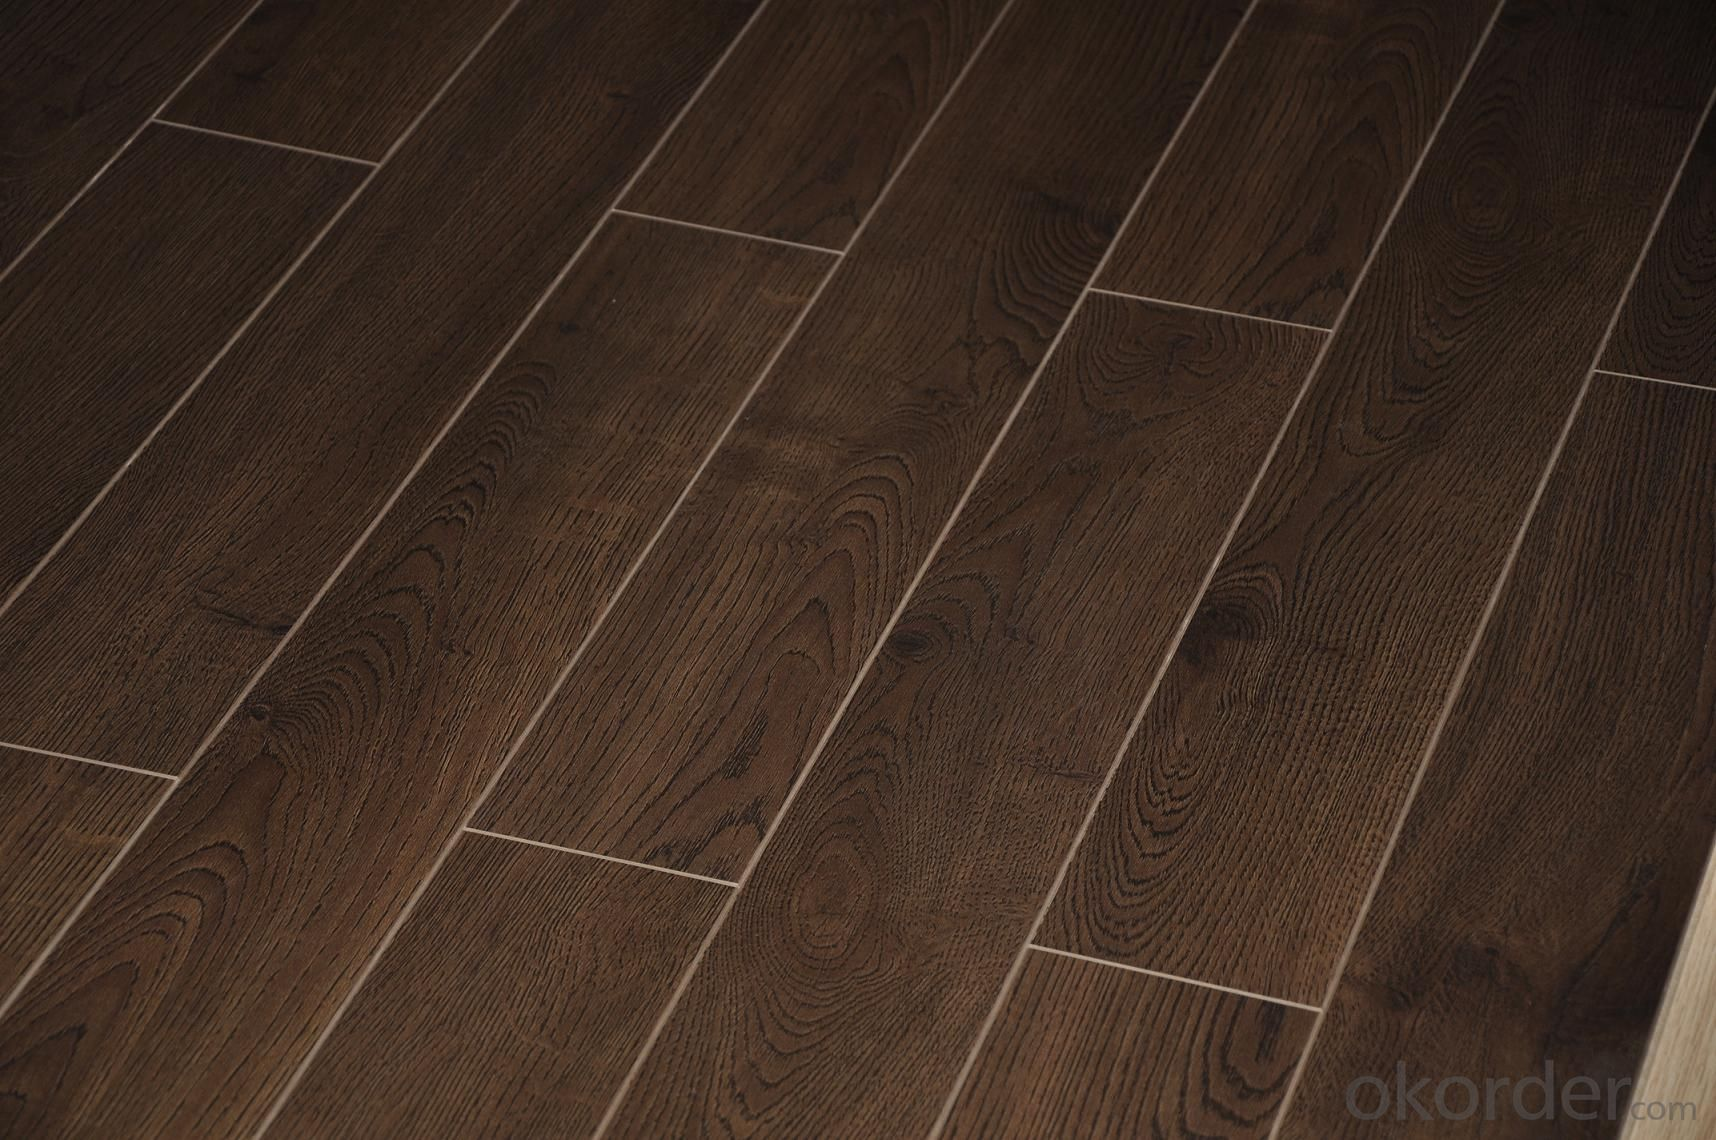 Laminate Flooring 7mm Export to Europe Engineer Wood